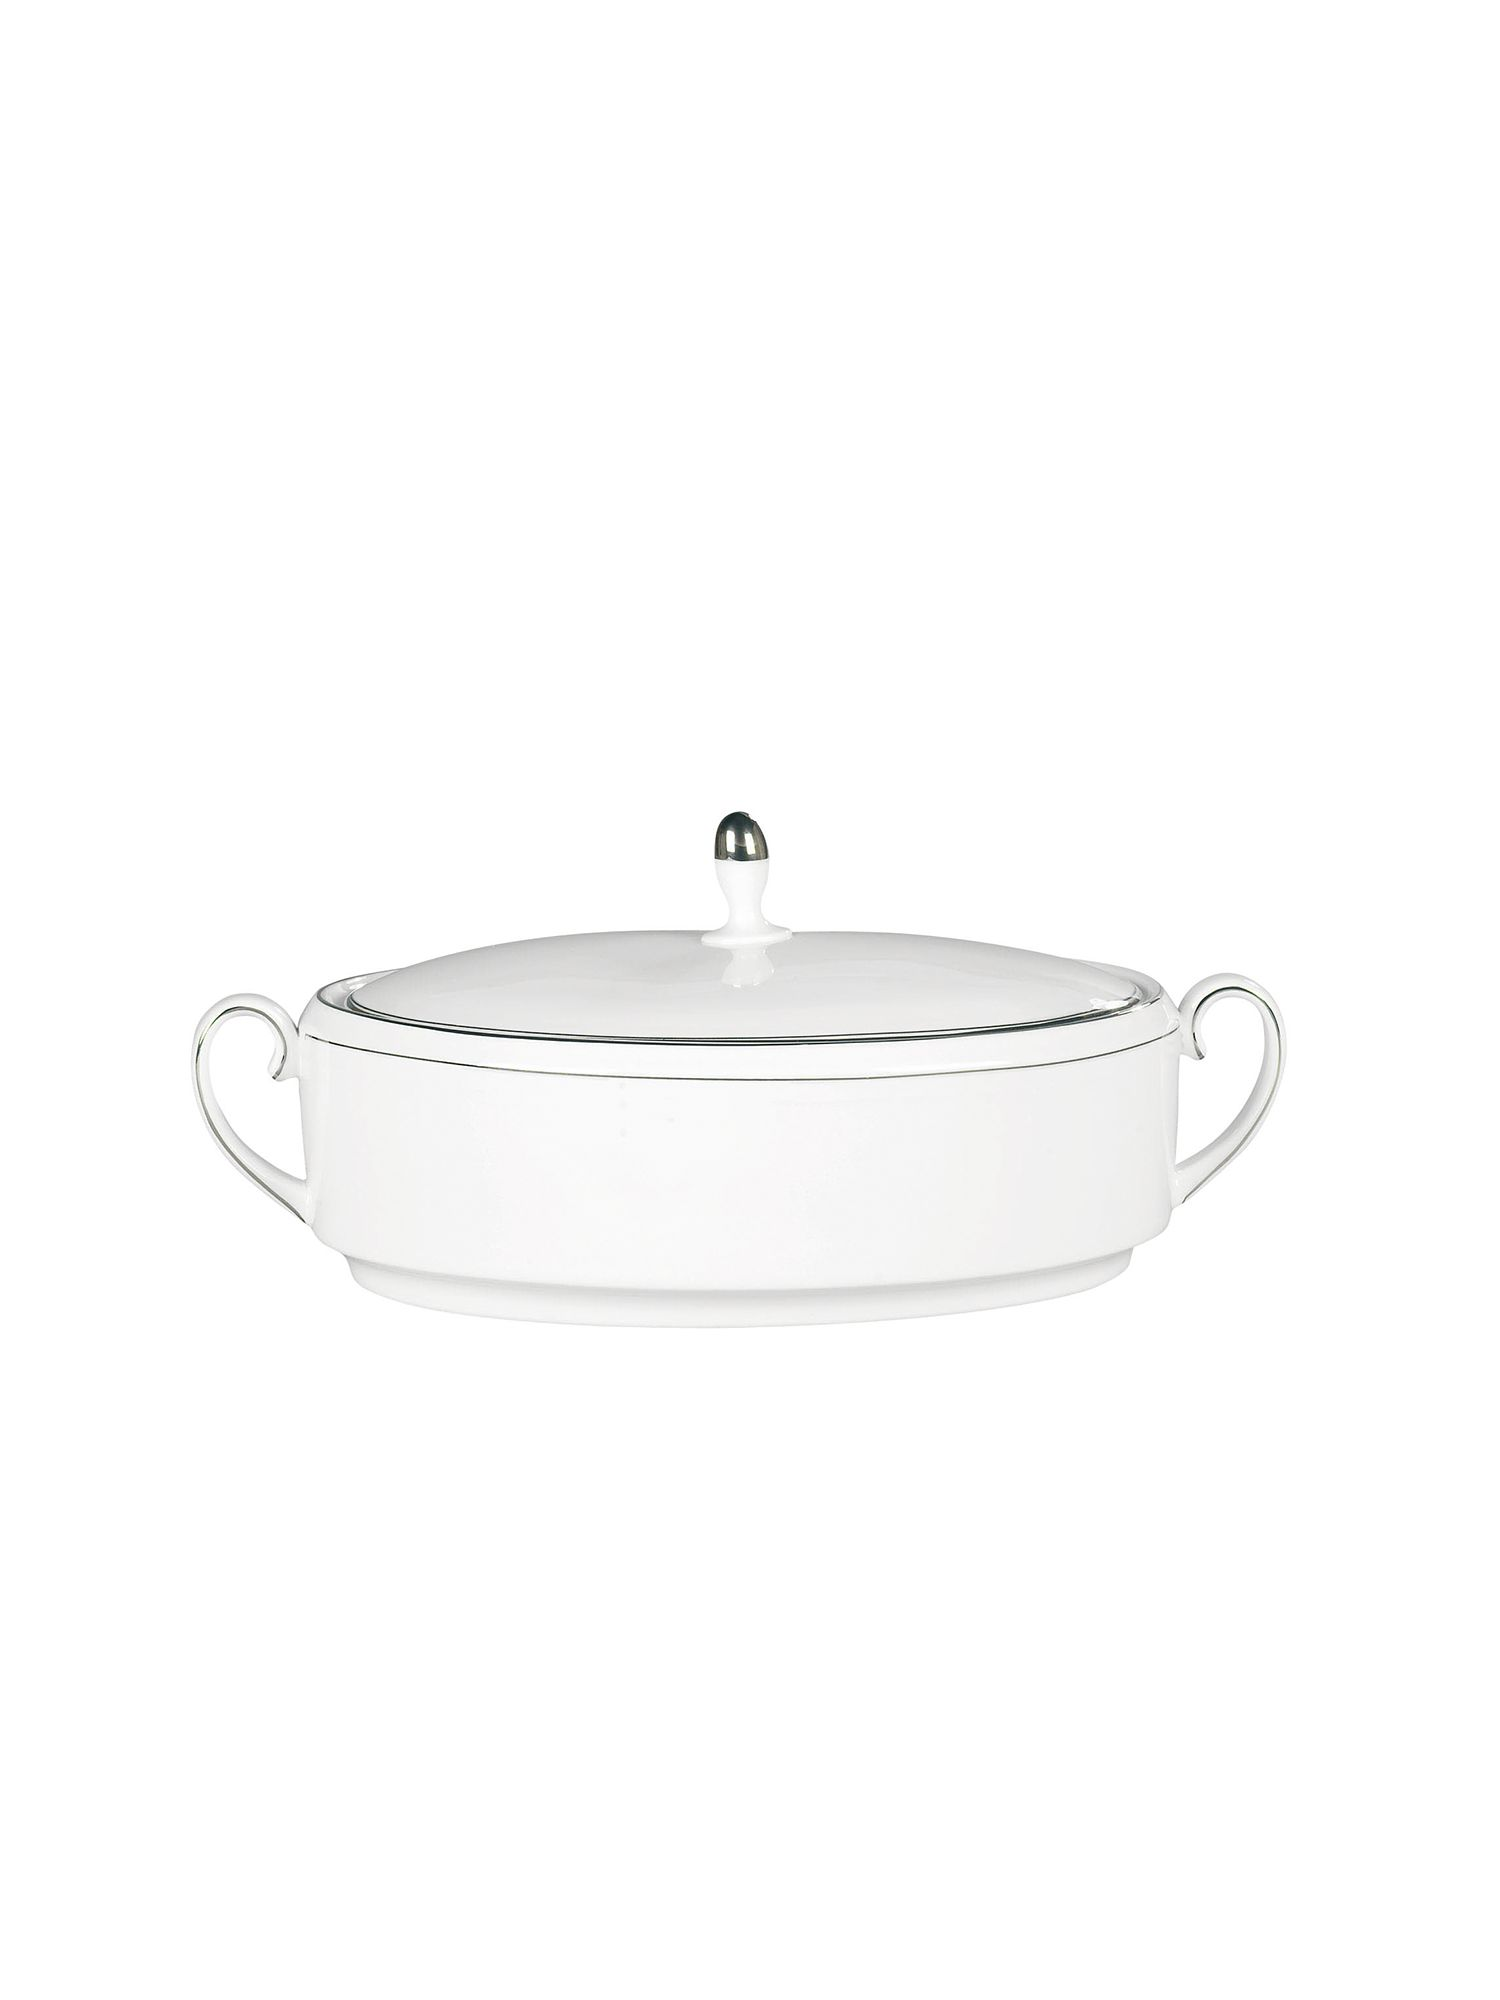 Vera Wang blanc sur blanc vegetable dish